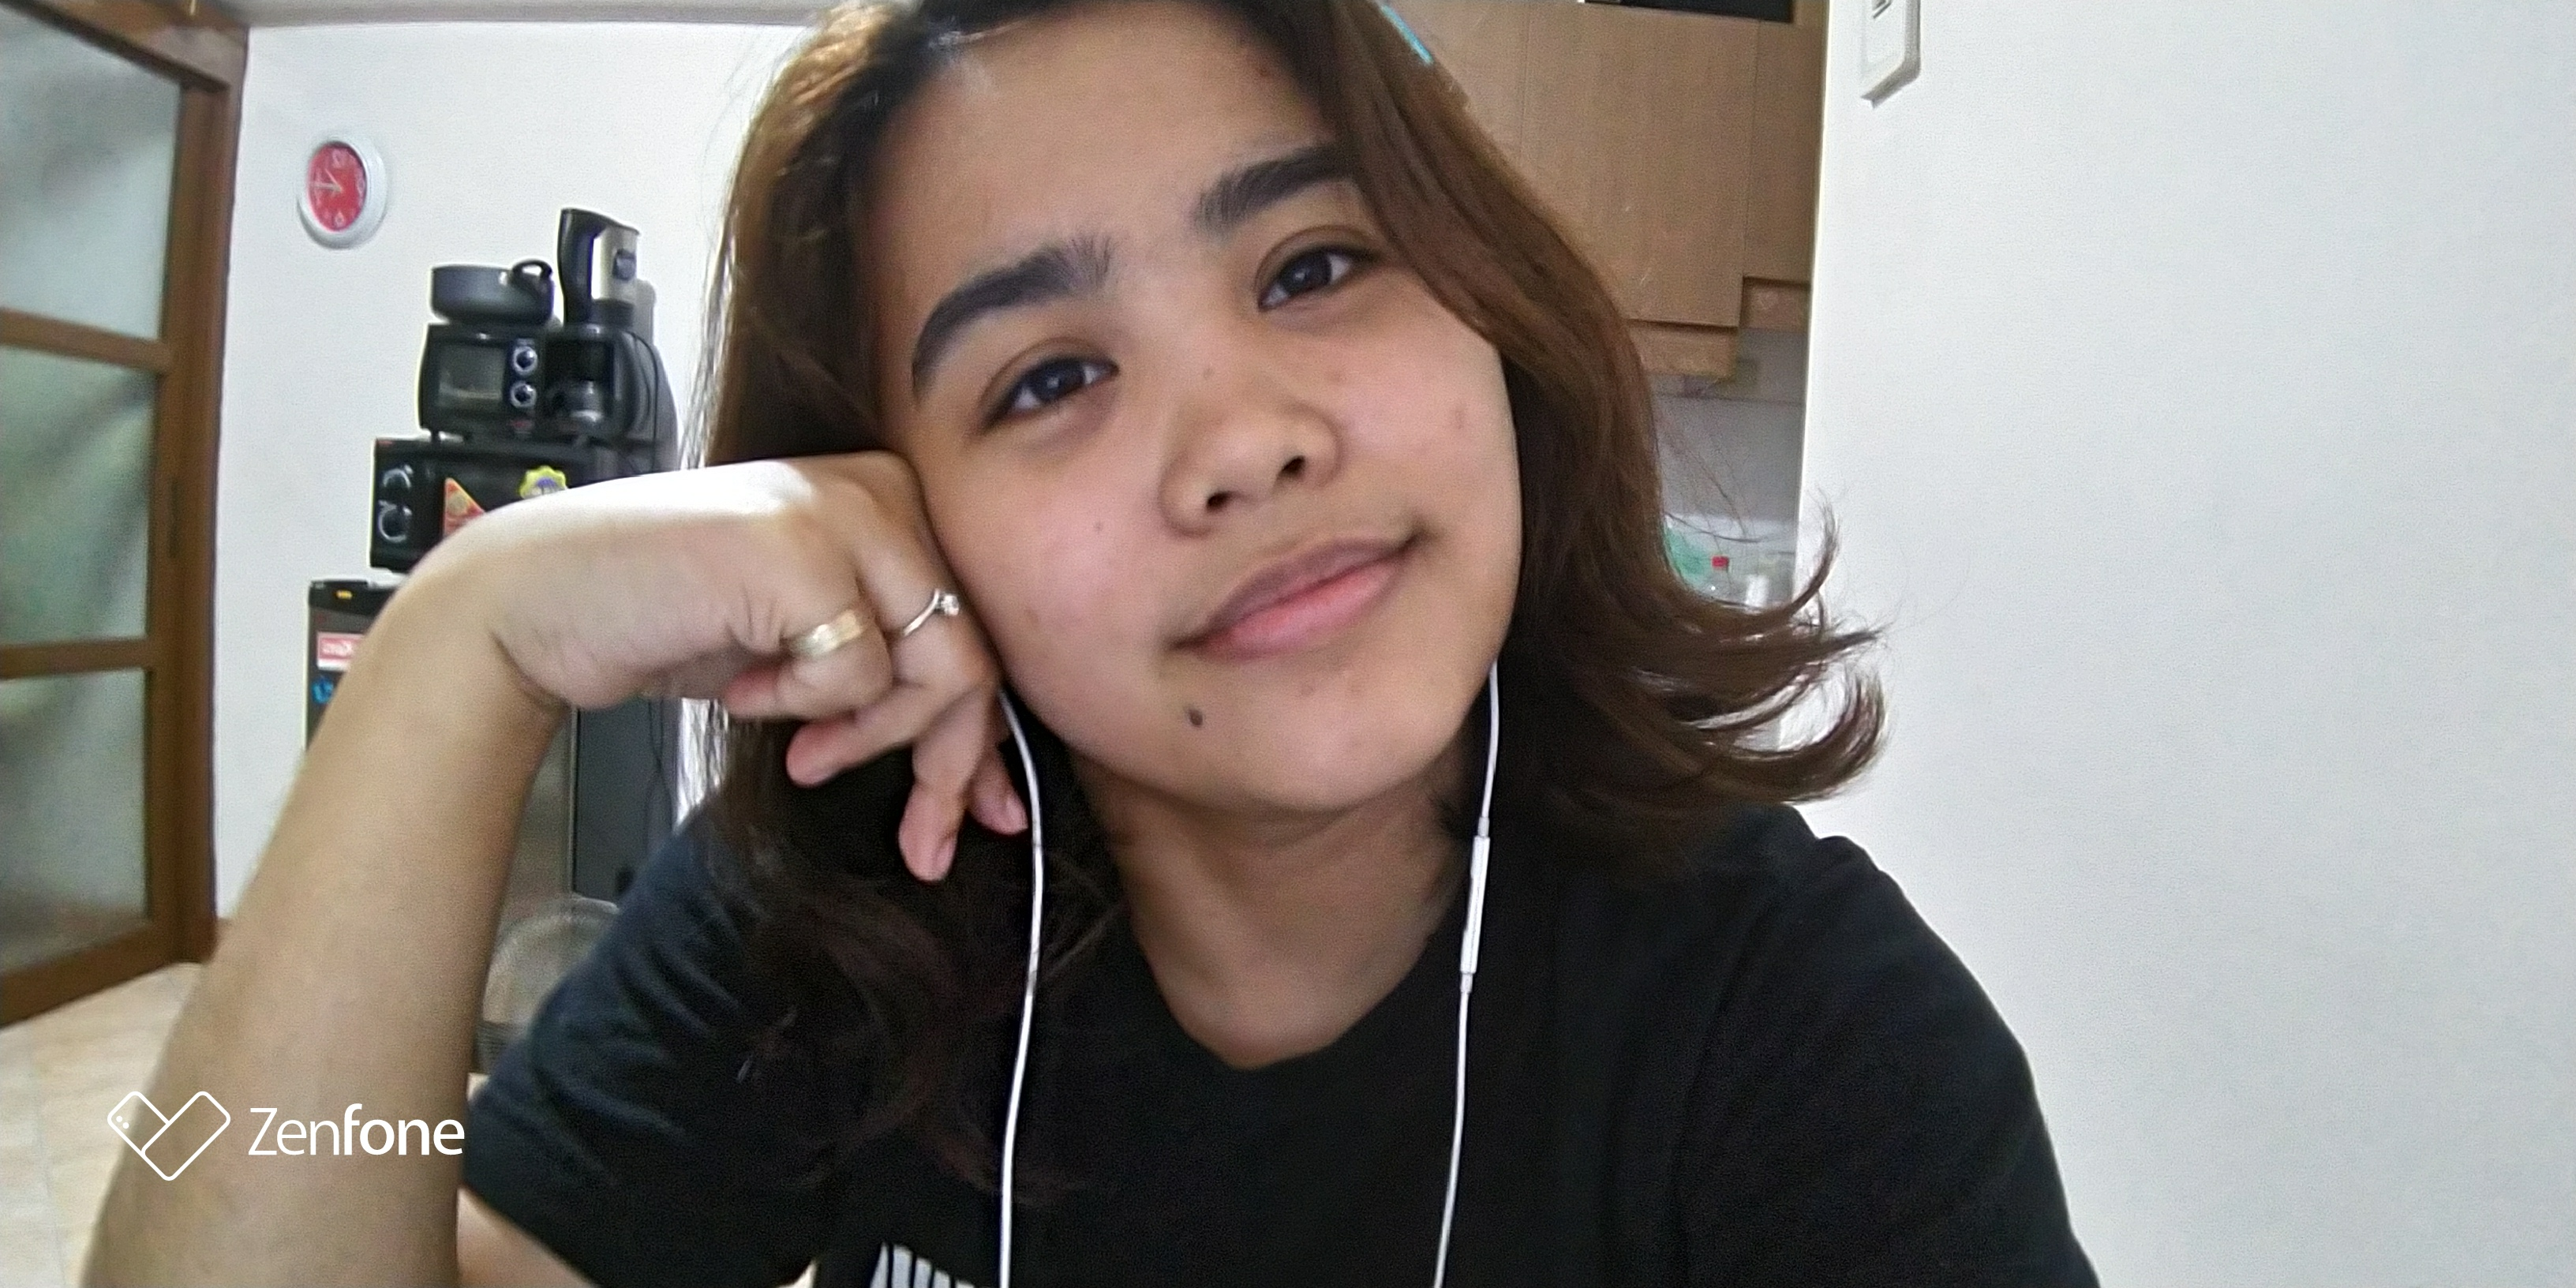 A bare-faced selfie for the Self-Love Project.